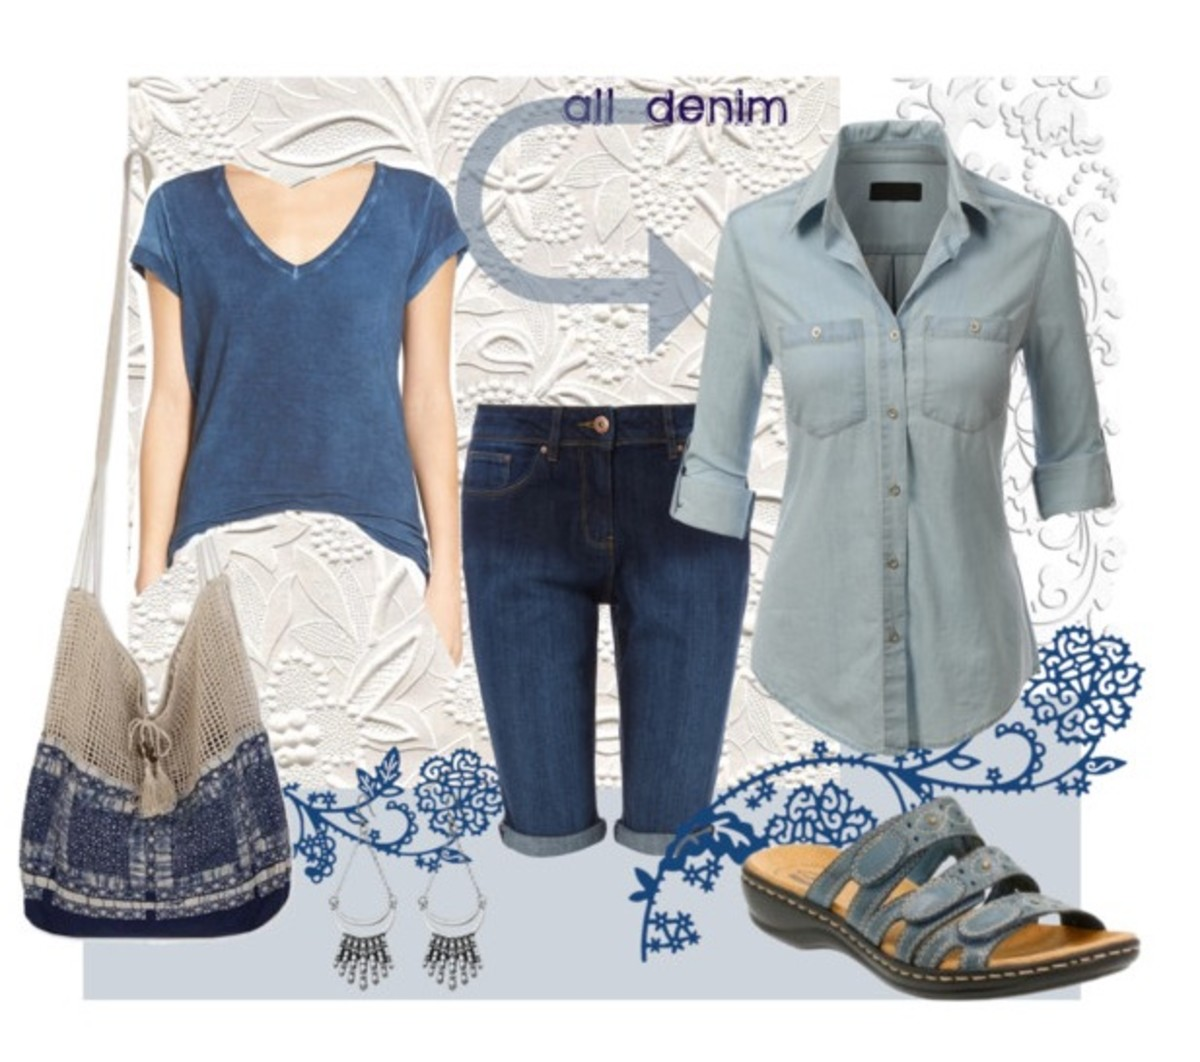 Collection featuring an all-denim look